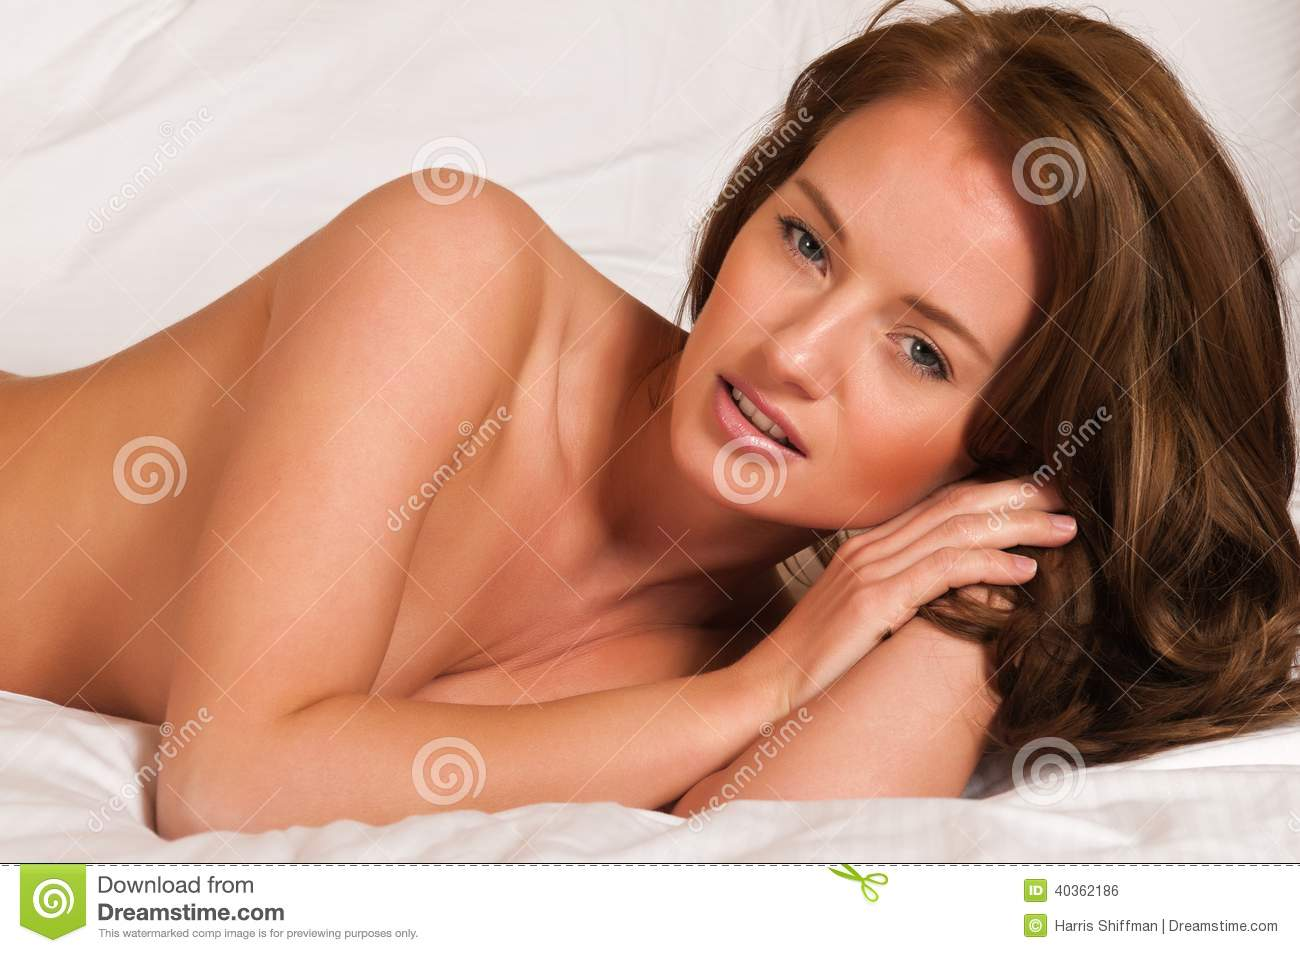 You were Gorgeous beuty nude in bed really. join